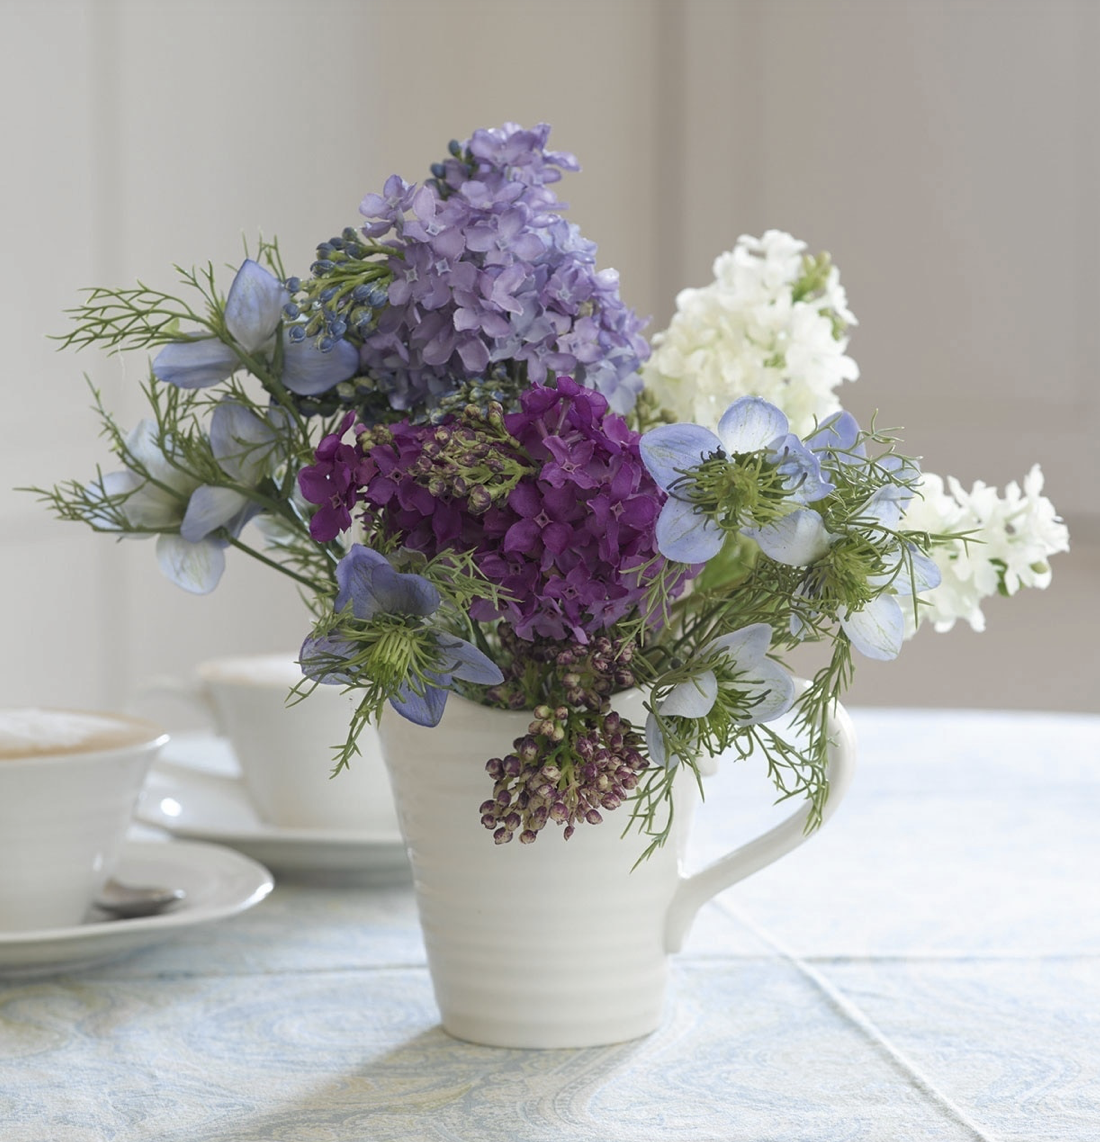 Garden flowers look great in a simple jug